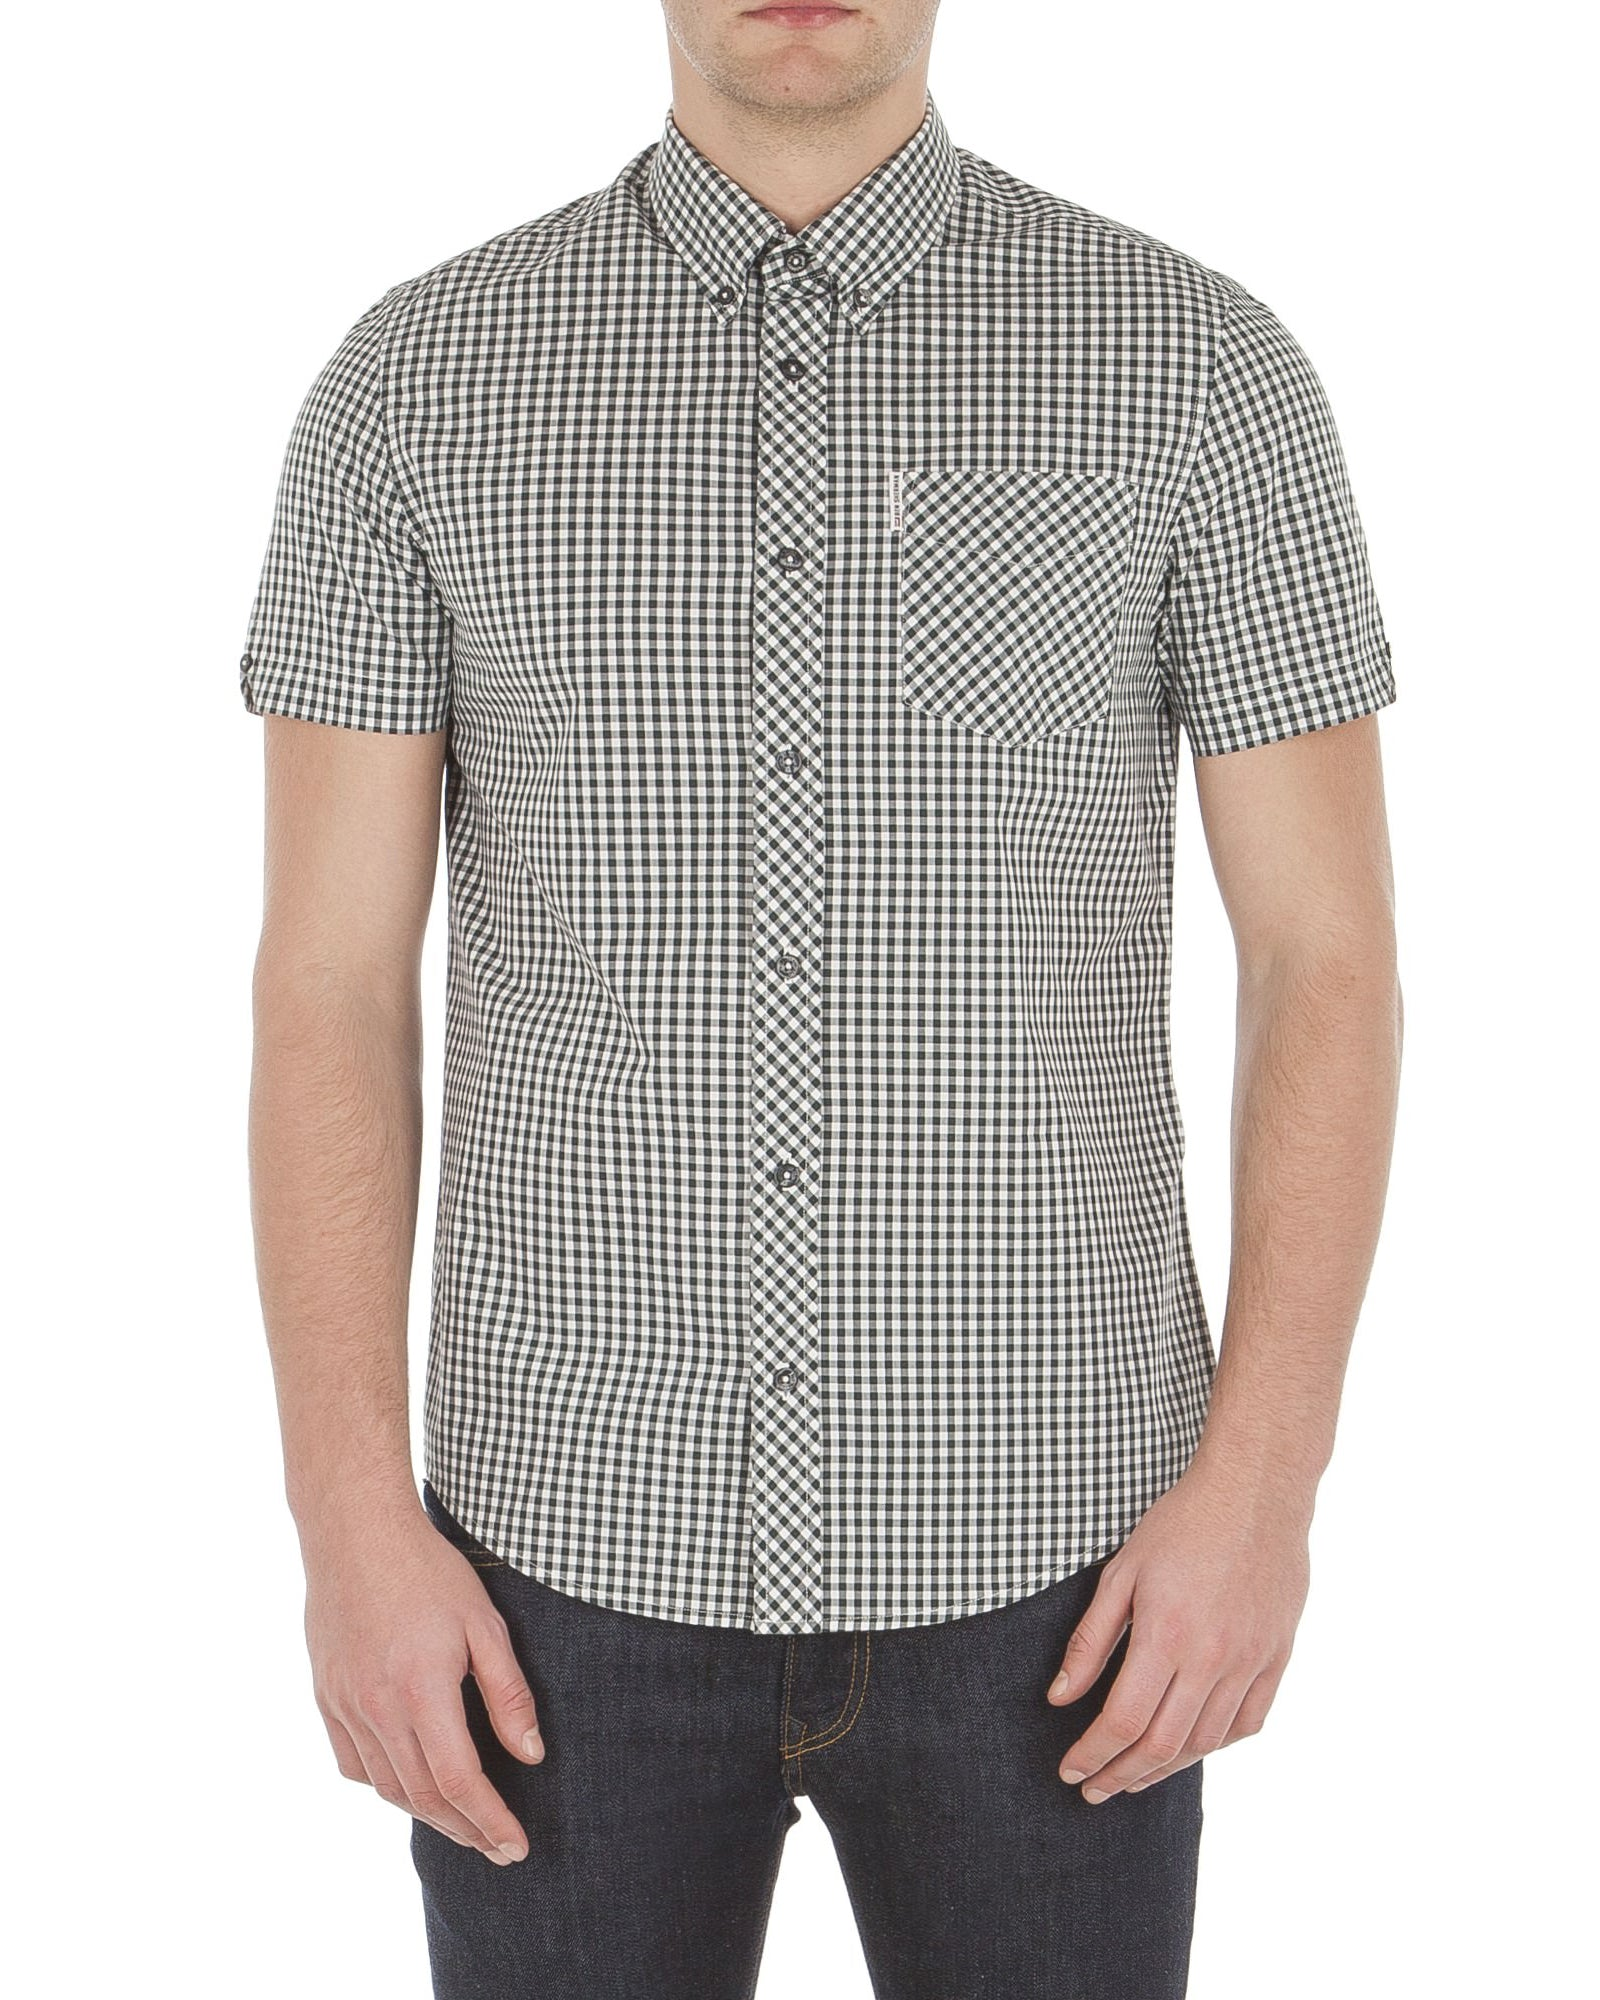 Short Sleeve Core Gingham Shirt - Racing Green